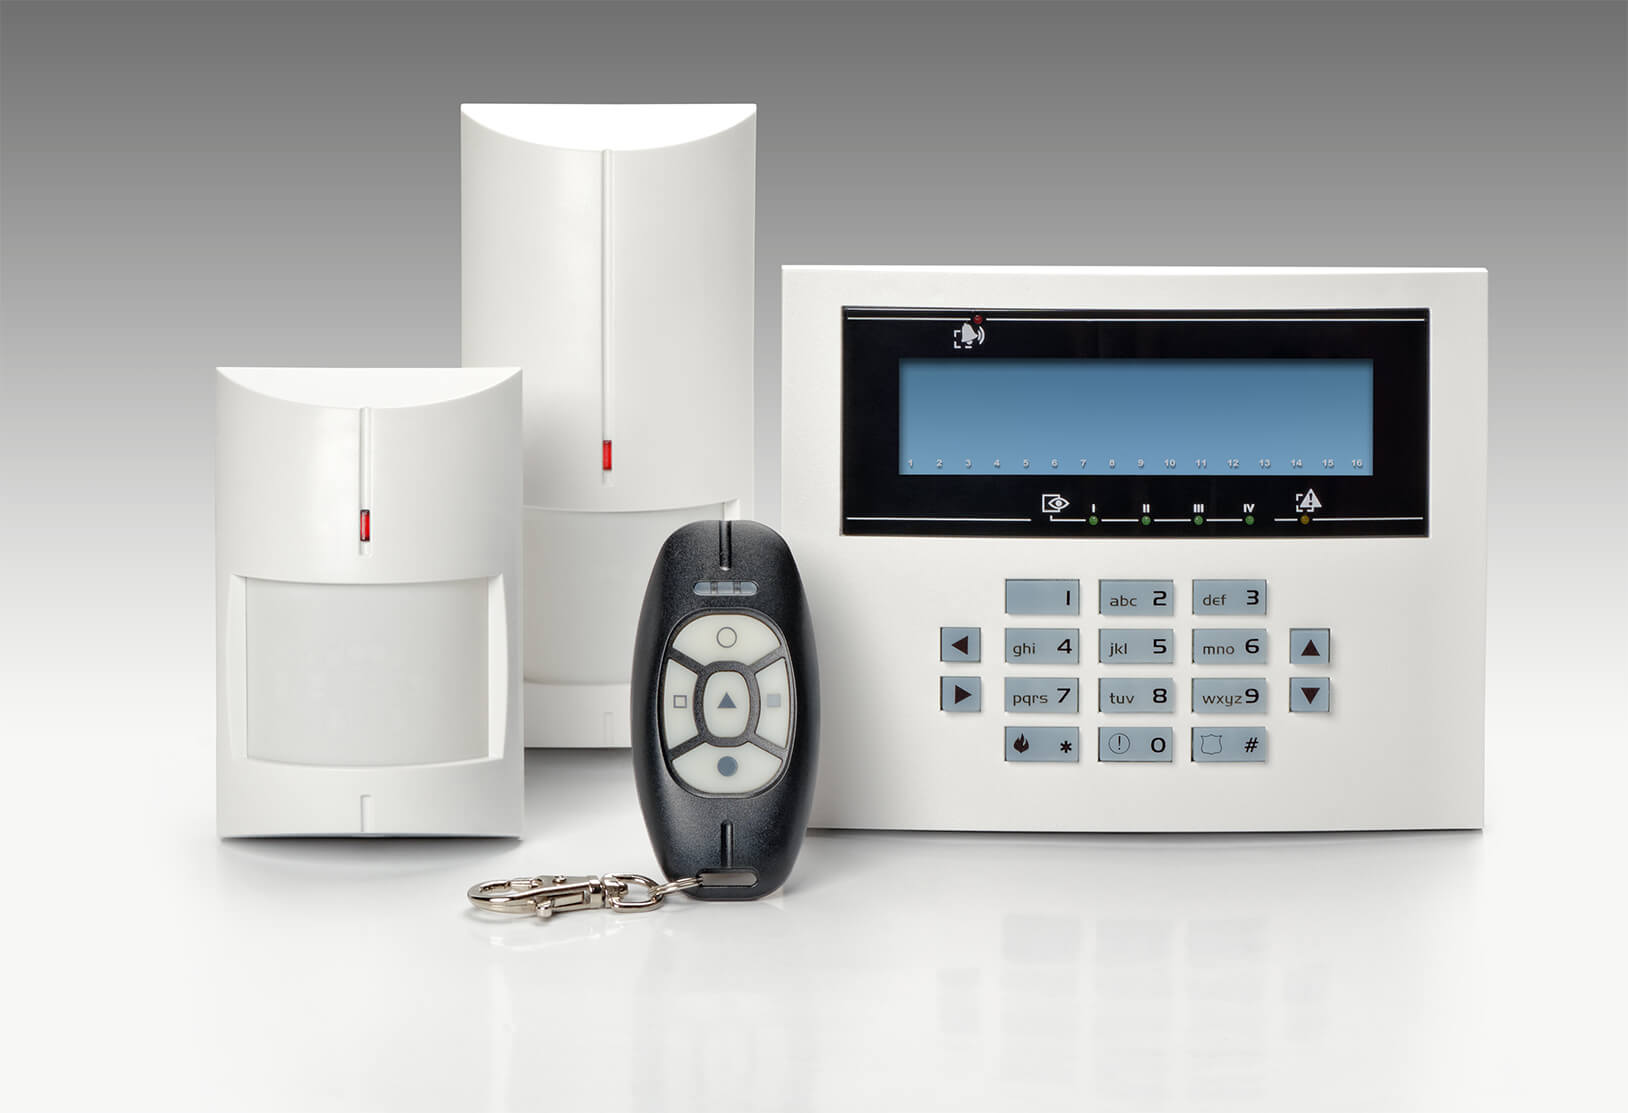 home NACOSS Approved {alarms} In Battersea SW18 - Local Battersea SW18 security company.Call 02078872244 - Dedicated to Safety & Security.Trusted by 1000's in Battersea SW18